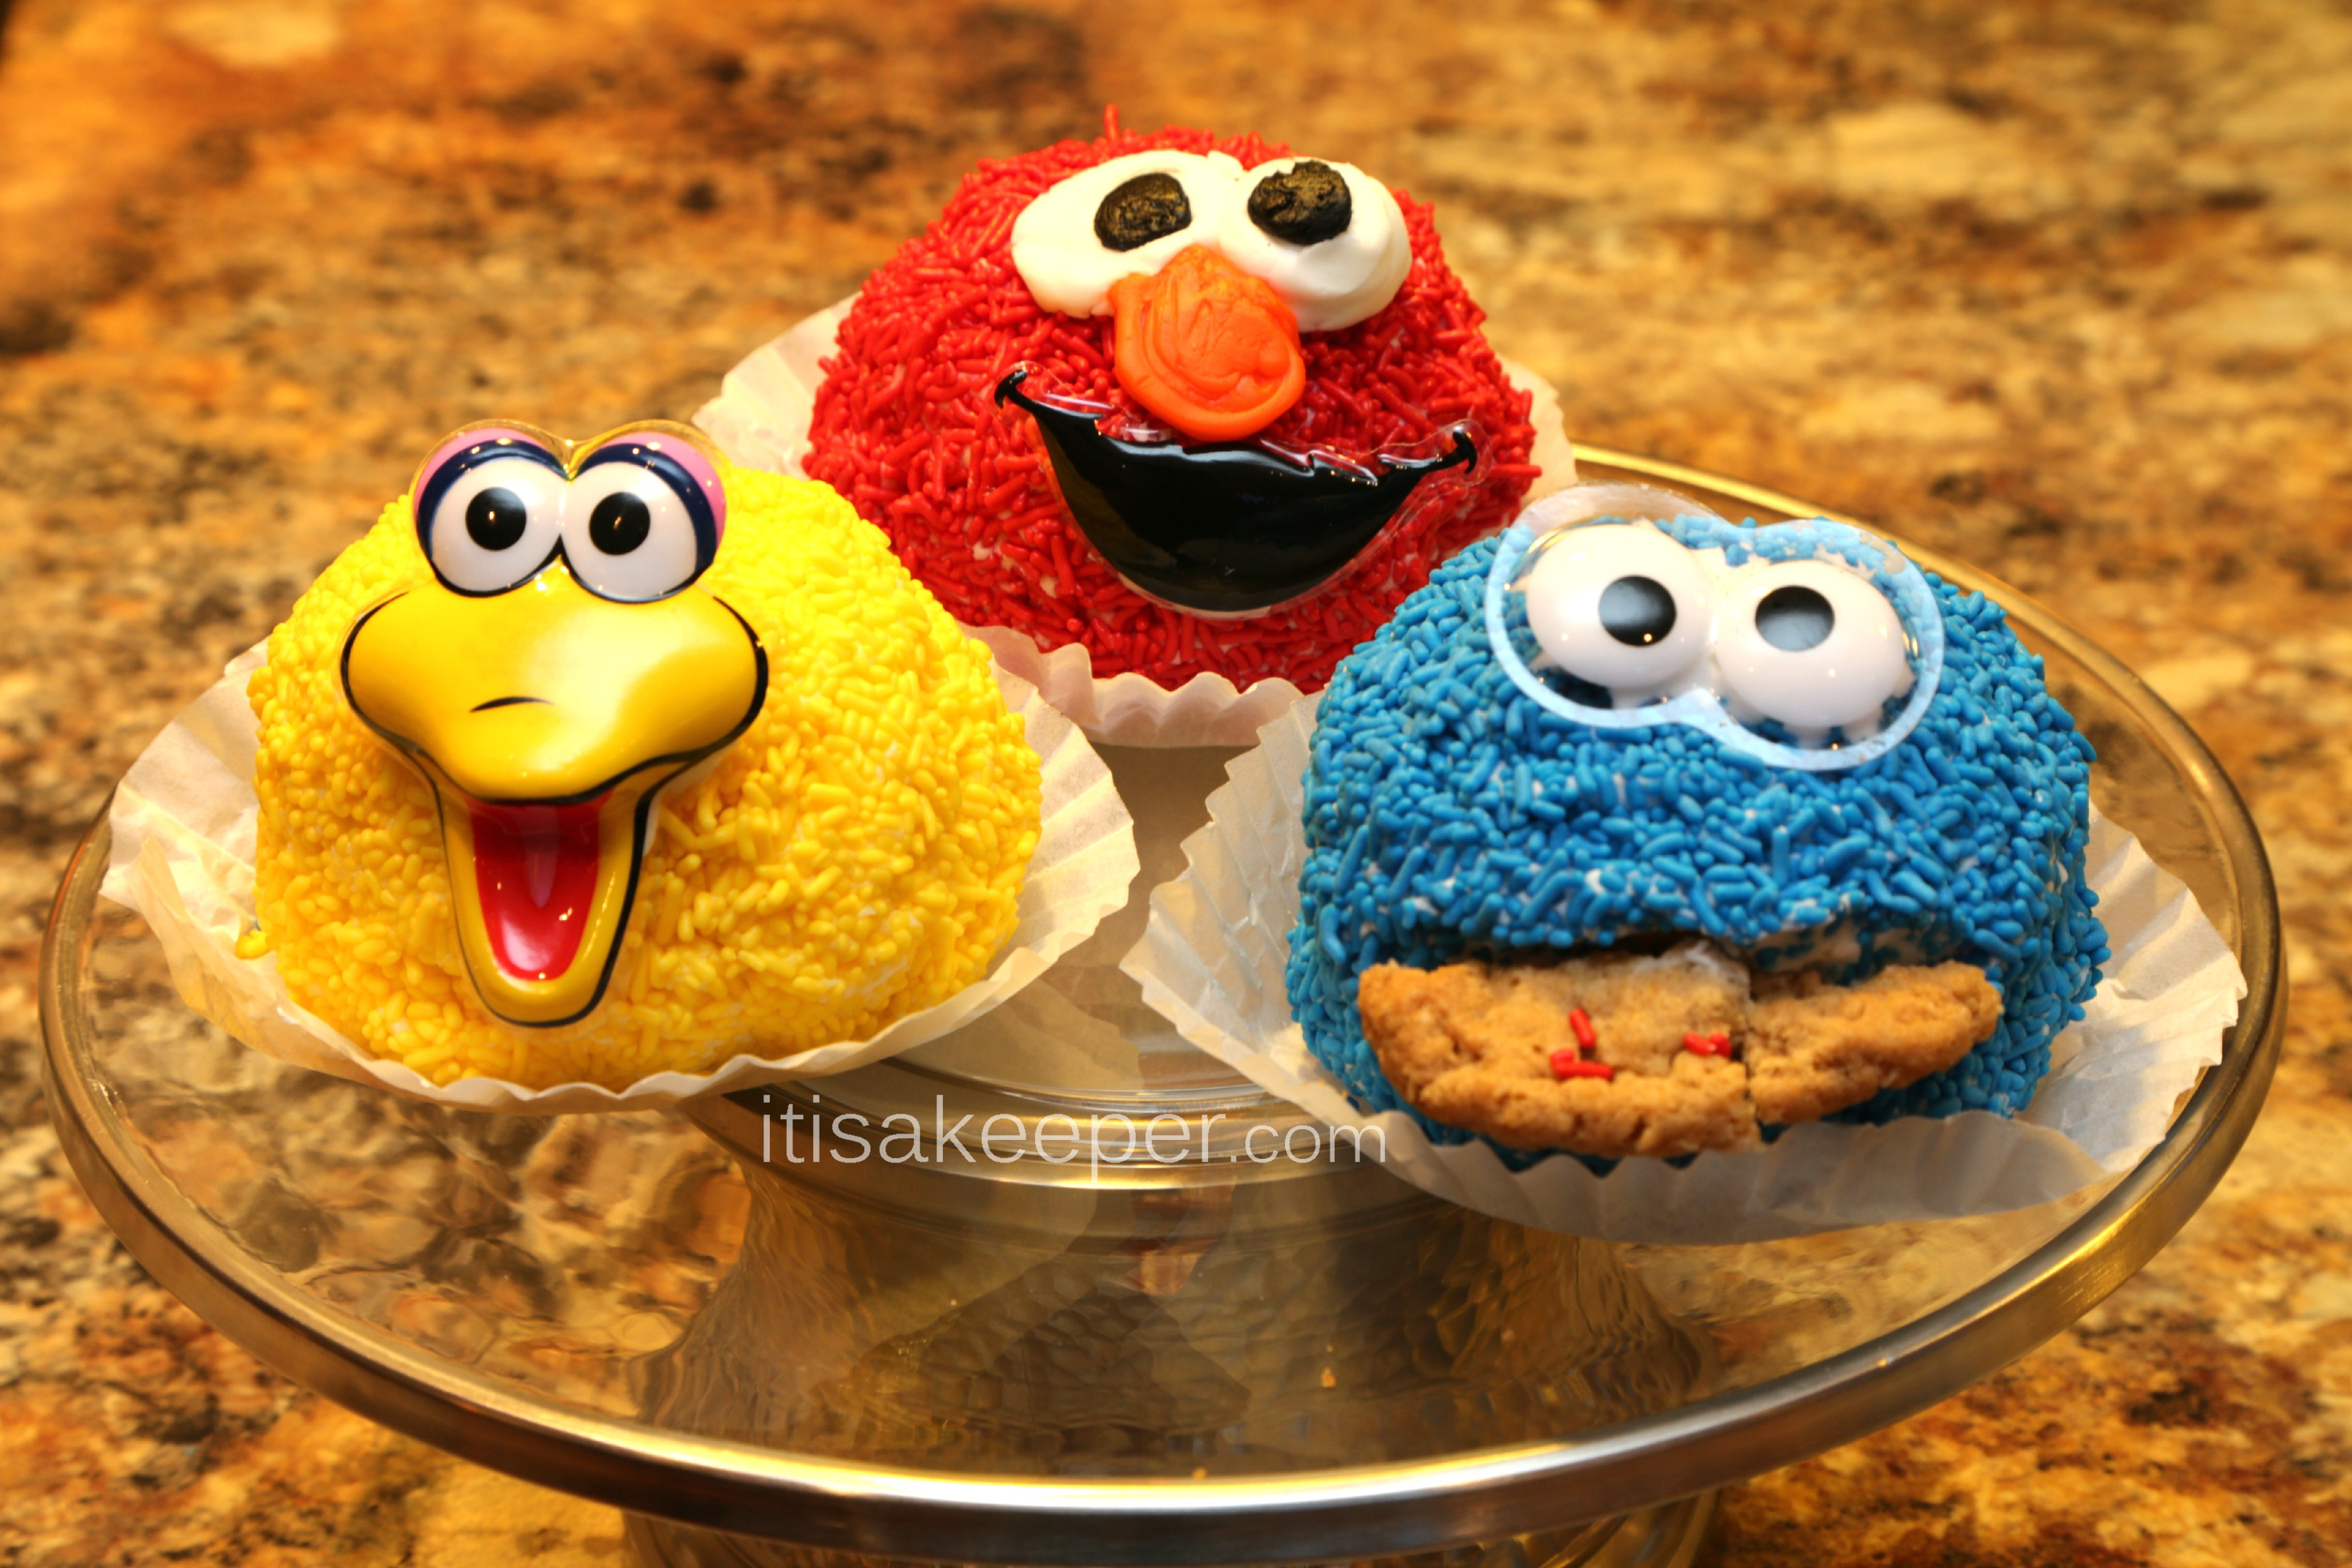 A Sesame Street Party with Bakery Craft Cakes